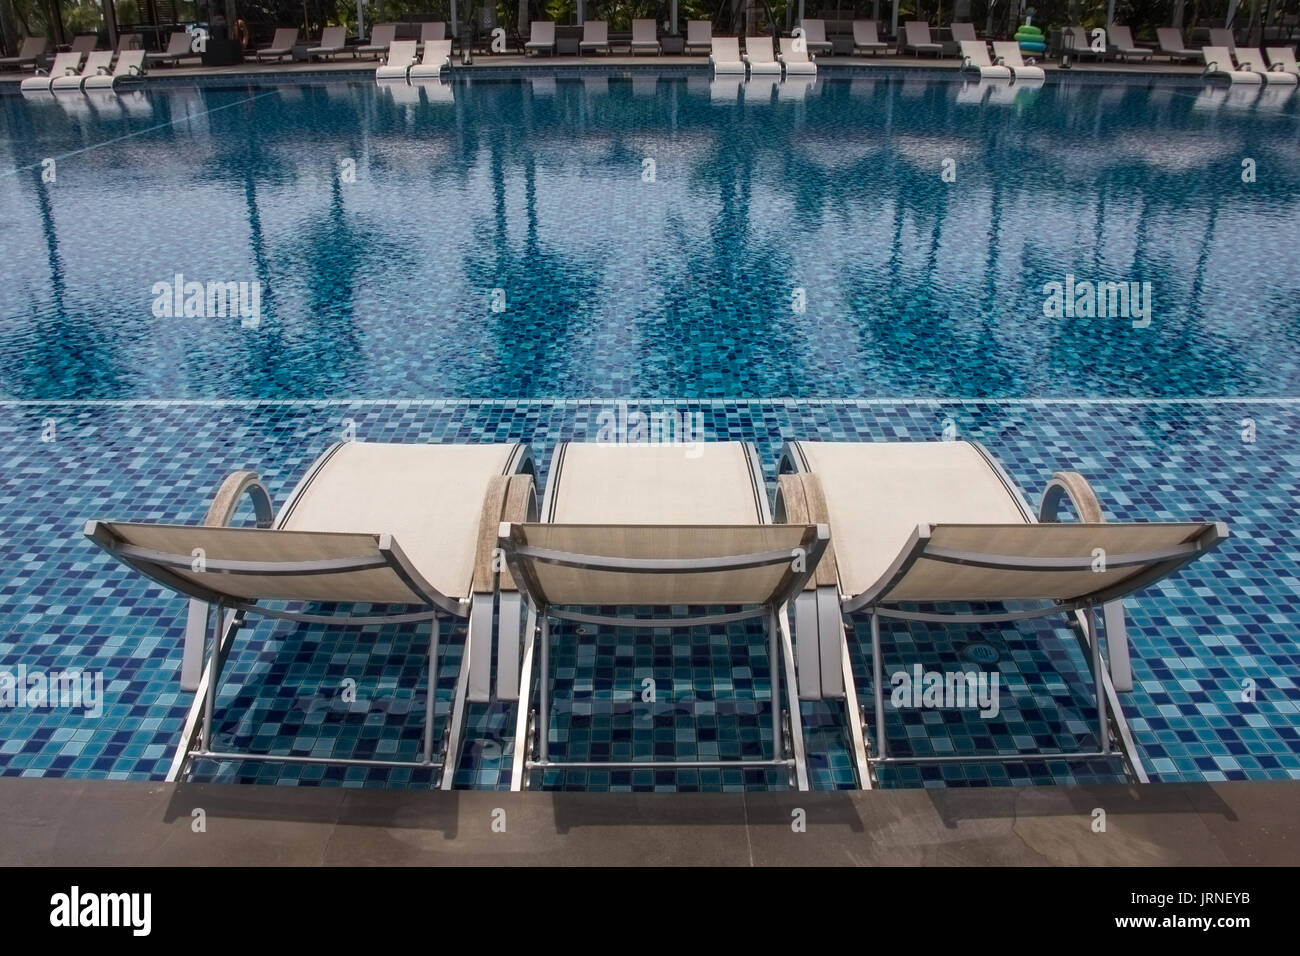 Luxus Outdoor Pool Luxury Swimming Pool And Blue Water At The Resort With